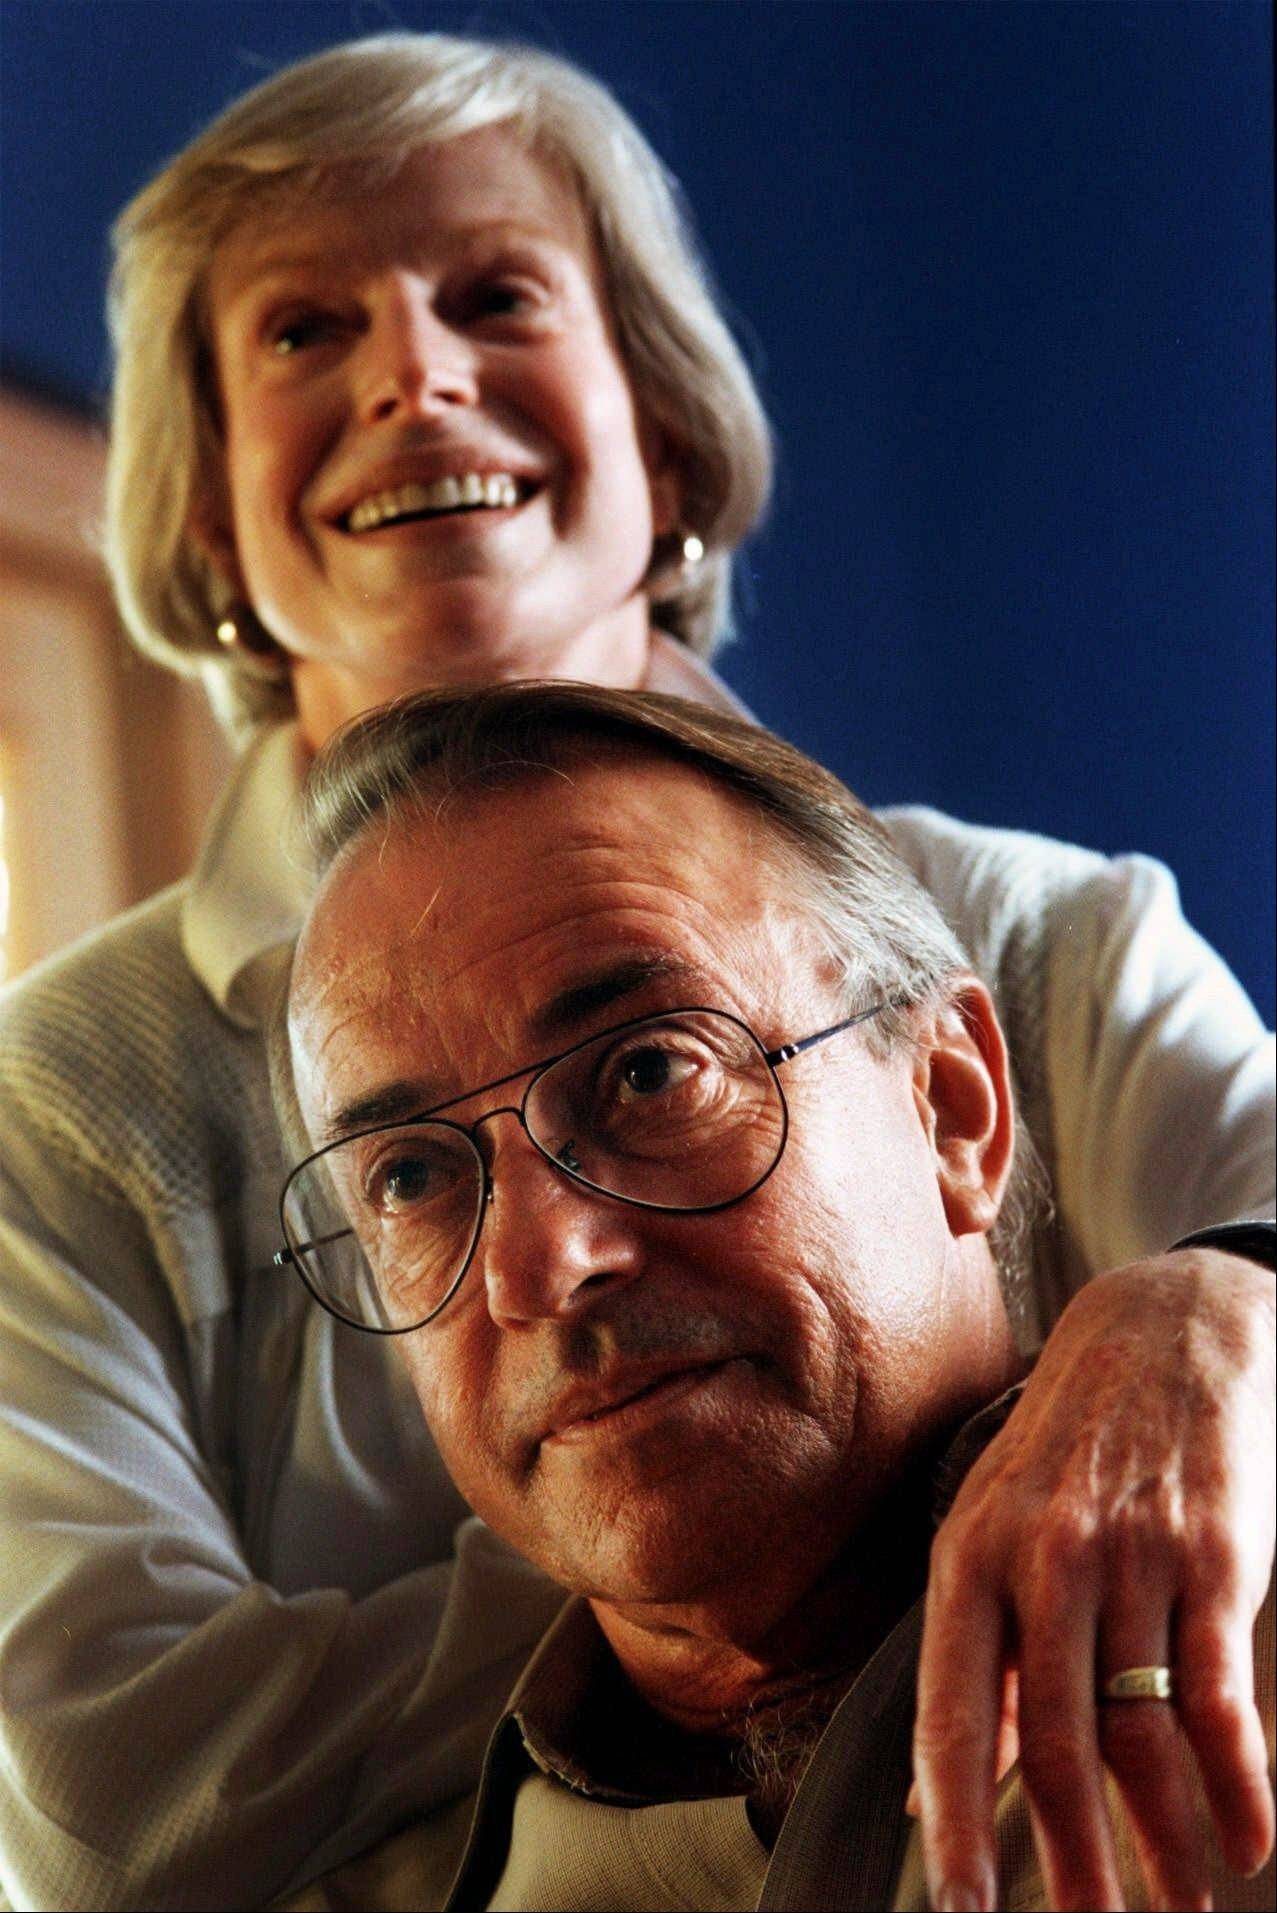 FILE - In this Oct. 29, 1999 file photo, retired newsman Richard Threlkeld and his wife, former CNN correspondent Betsy Aaron, pose at their home in Tucson, Ariz. Threlkeld, who worked for ABC News from 1982-89, spent the majority of his career at CBS News, died Friday morning in Amagansett, N.Y., and was pronounced dead at Southampton Hospital. He lived nearby in East Hampton.† (AP Photo/Arizona Daily Star, Chris Richards, file) MANDATORY CREDIT